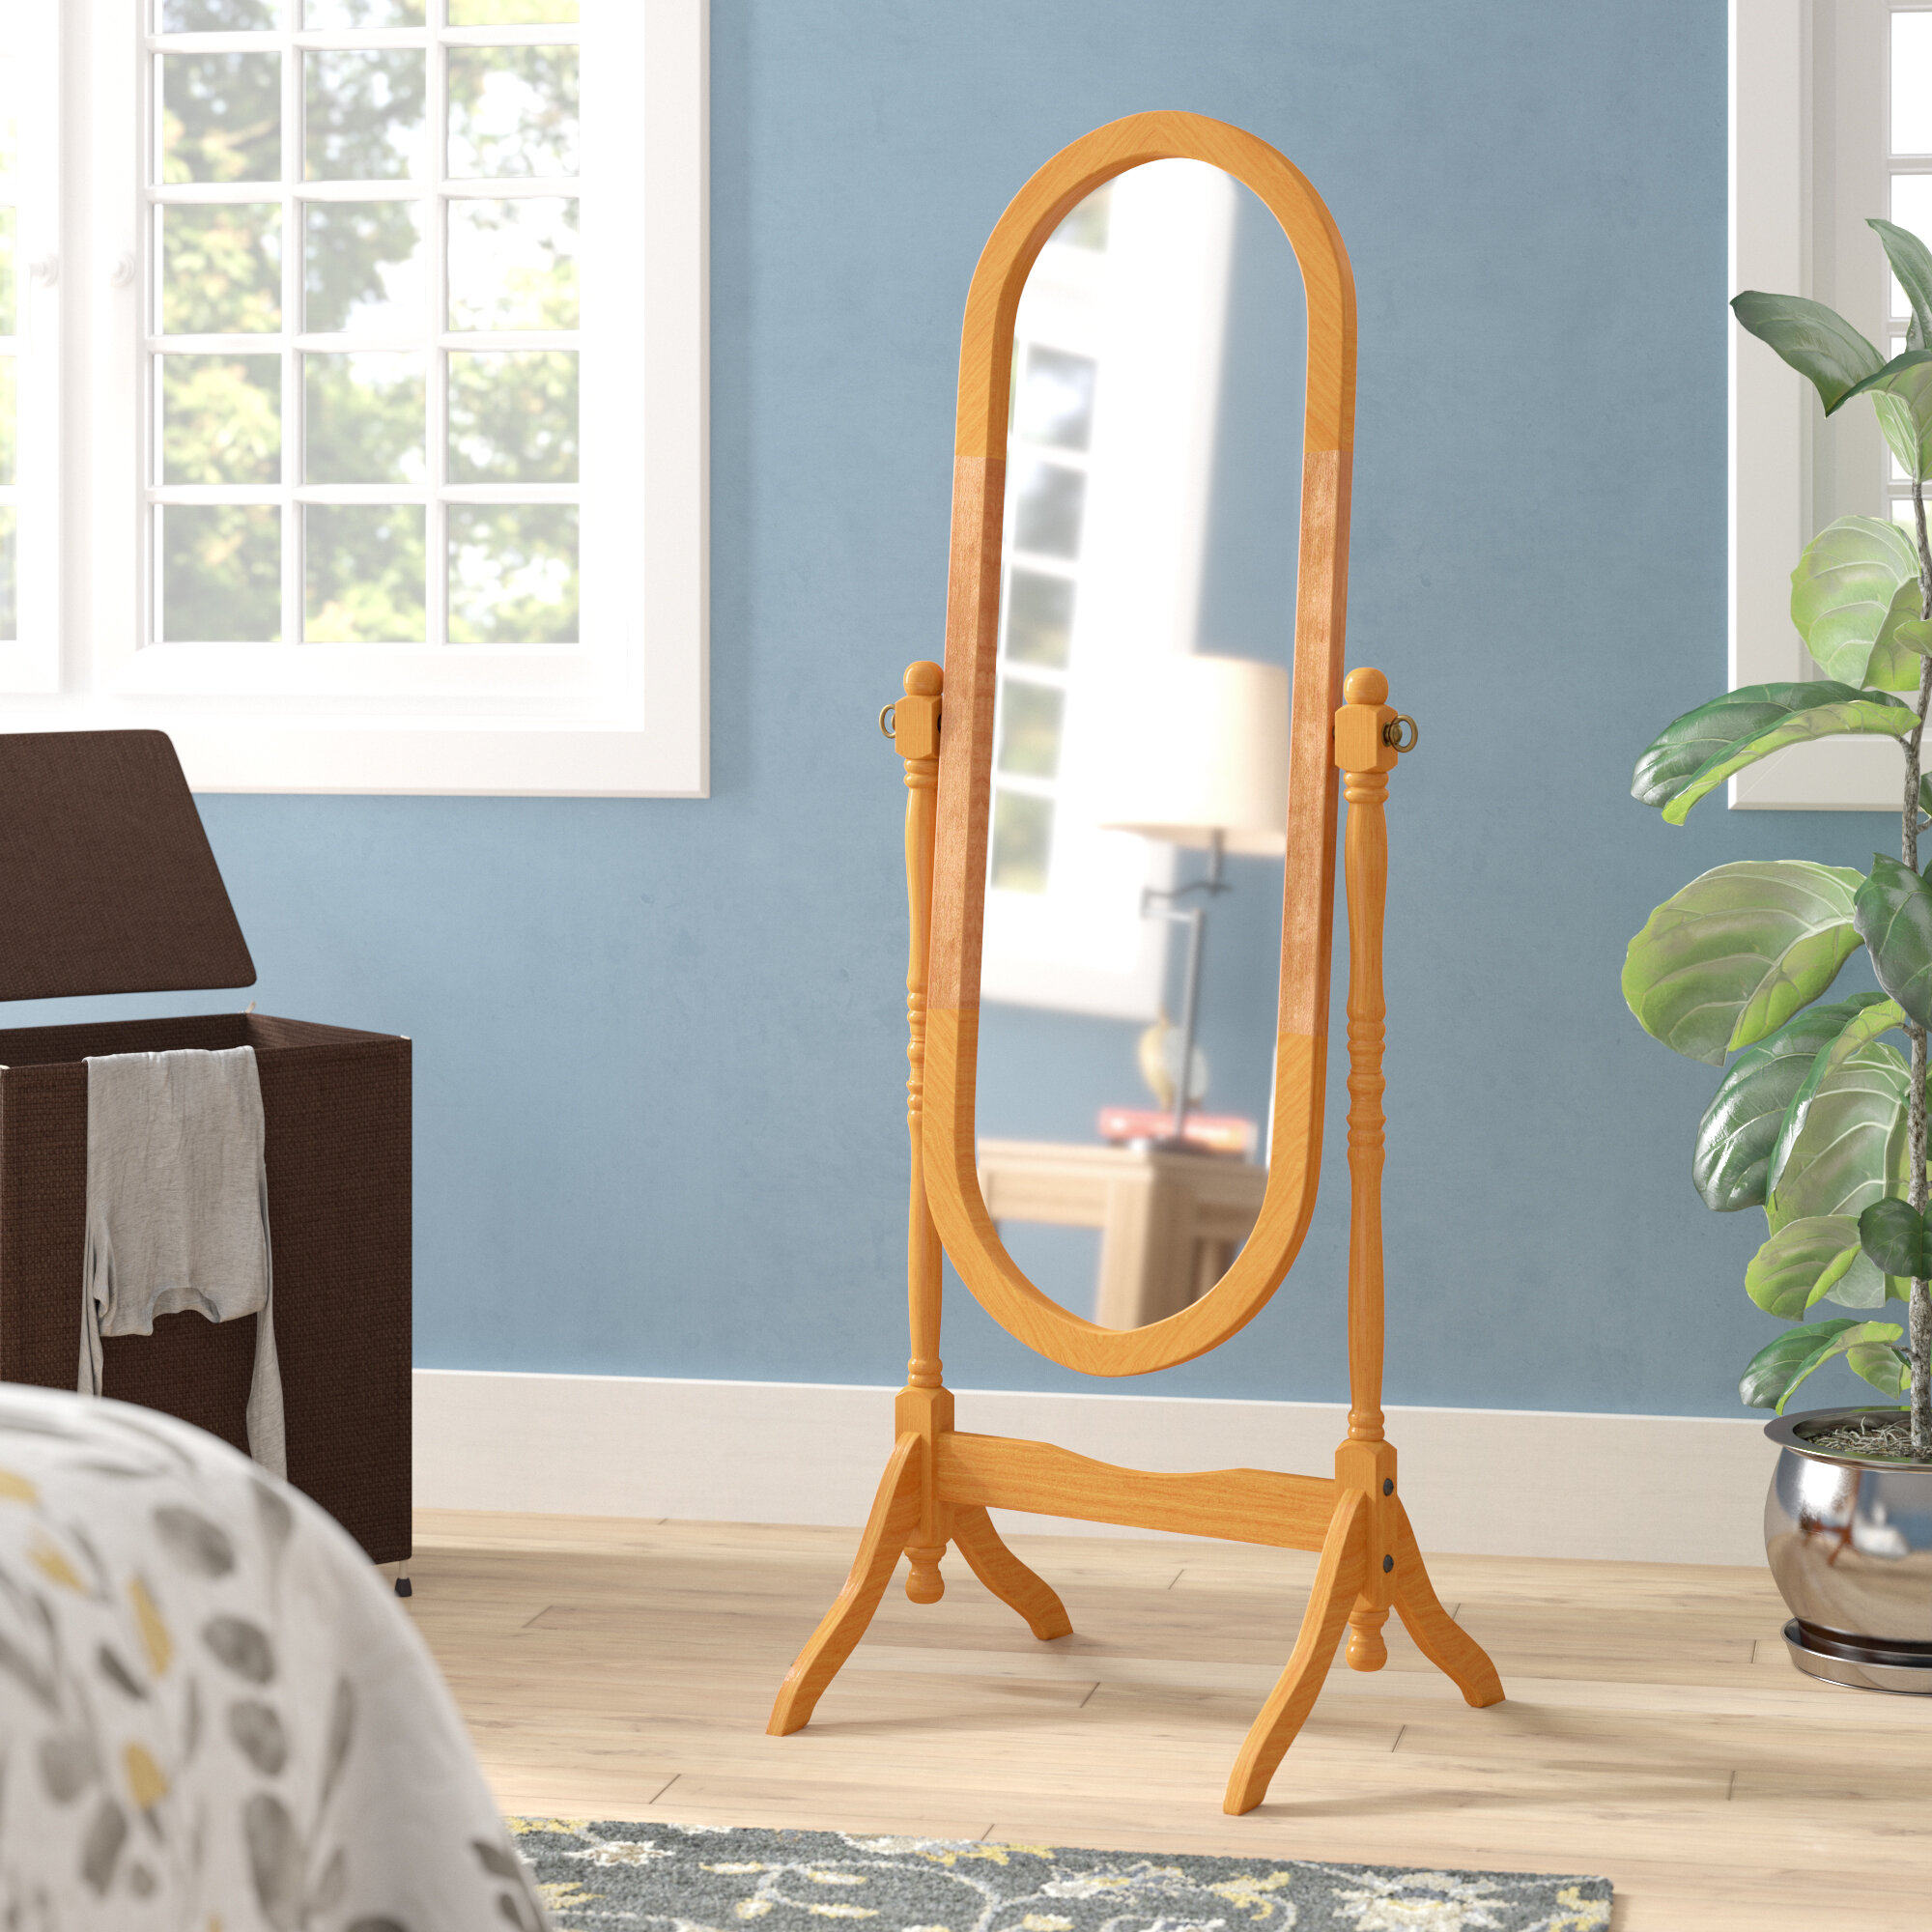 Oval Floor Mirrors Free Shipping Over 35 Wayfair